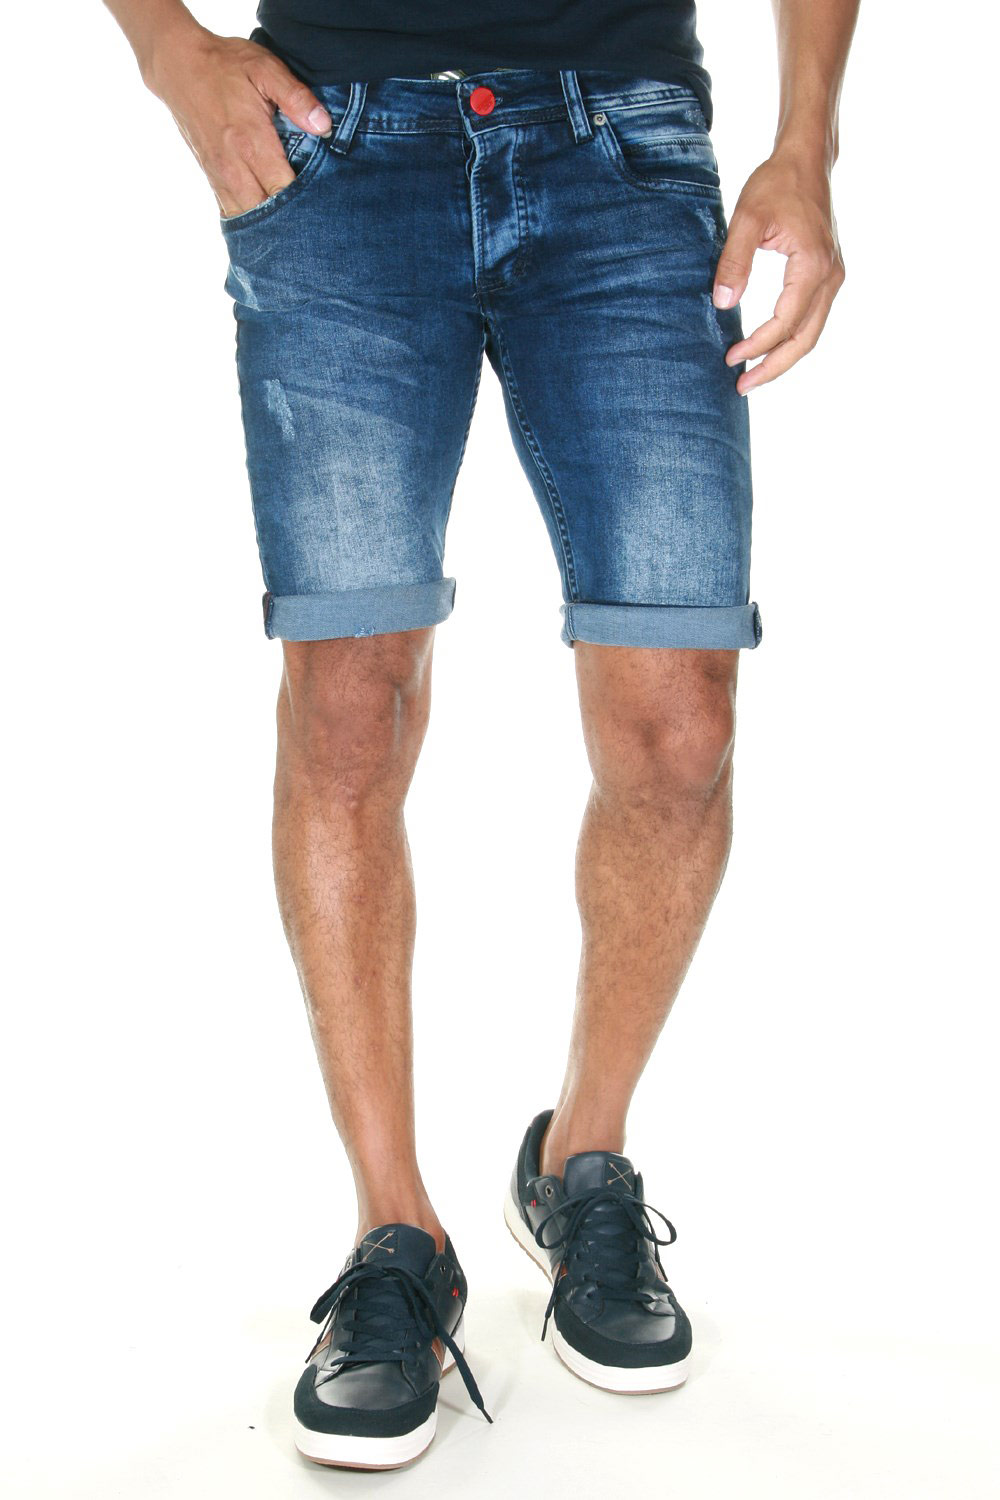 EX-PENT shorts at oboy.com